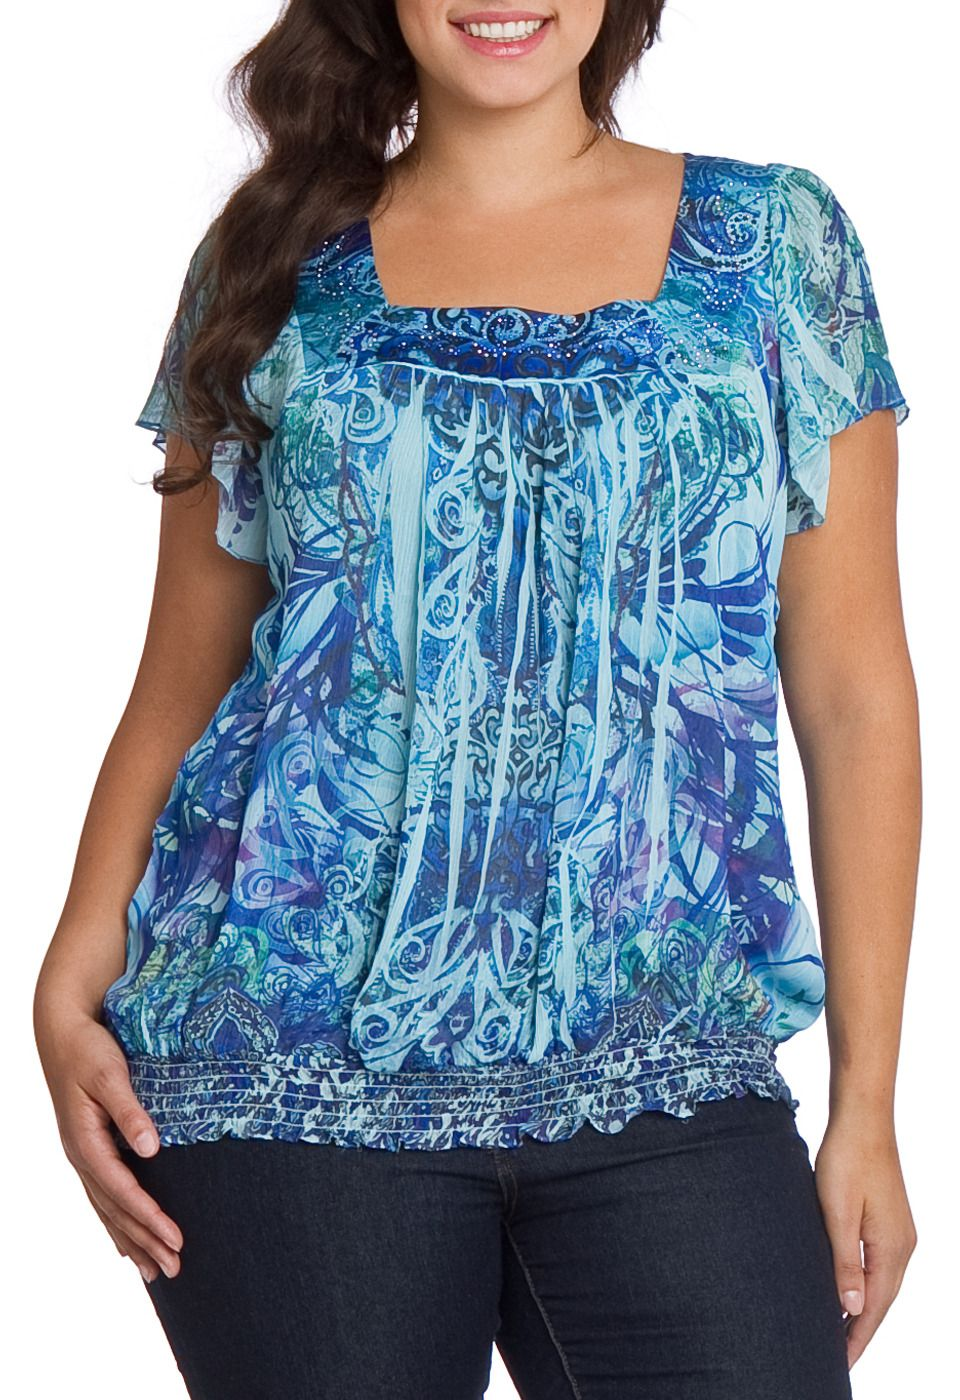 Oneworld apparel jessica top in teal beyond the rack my style